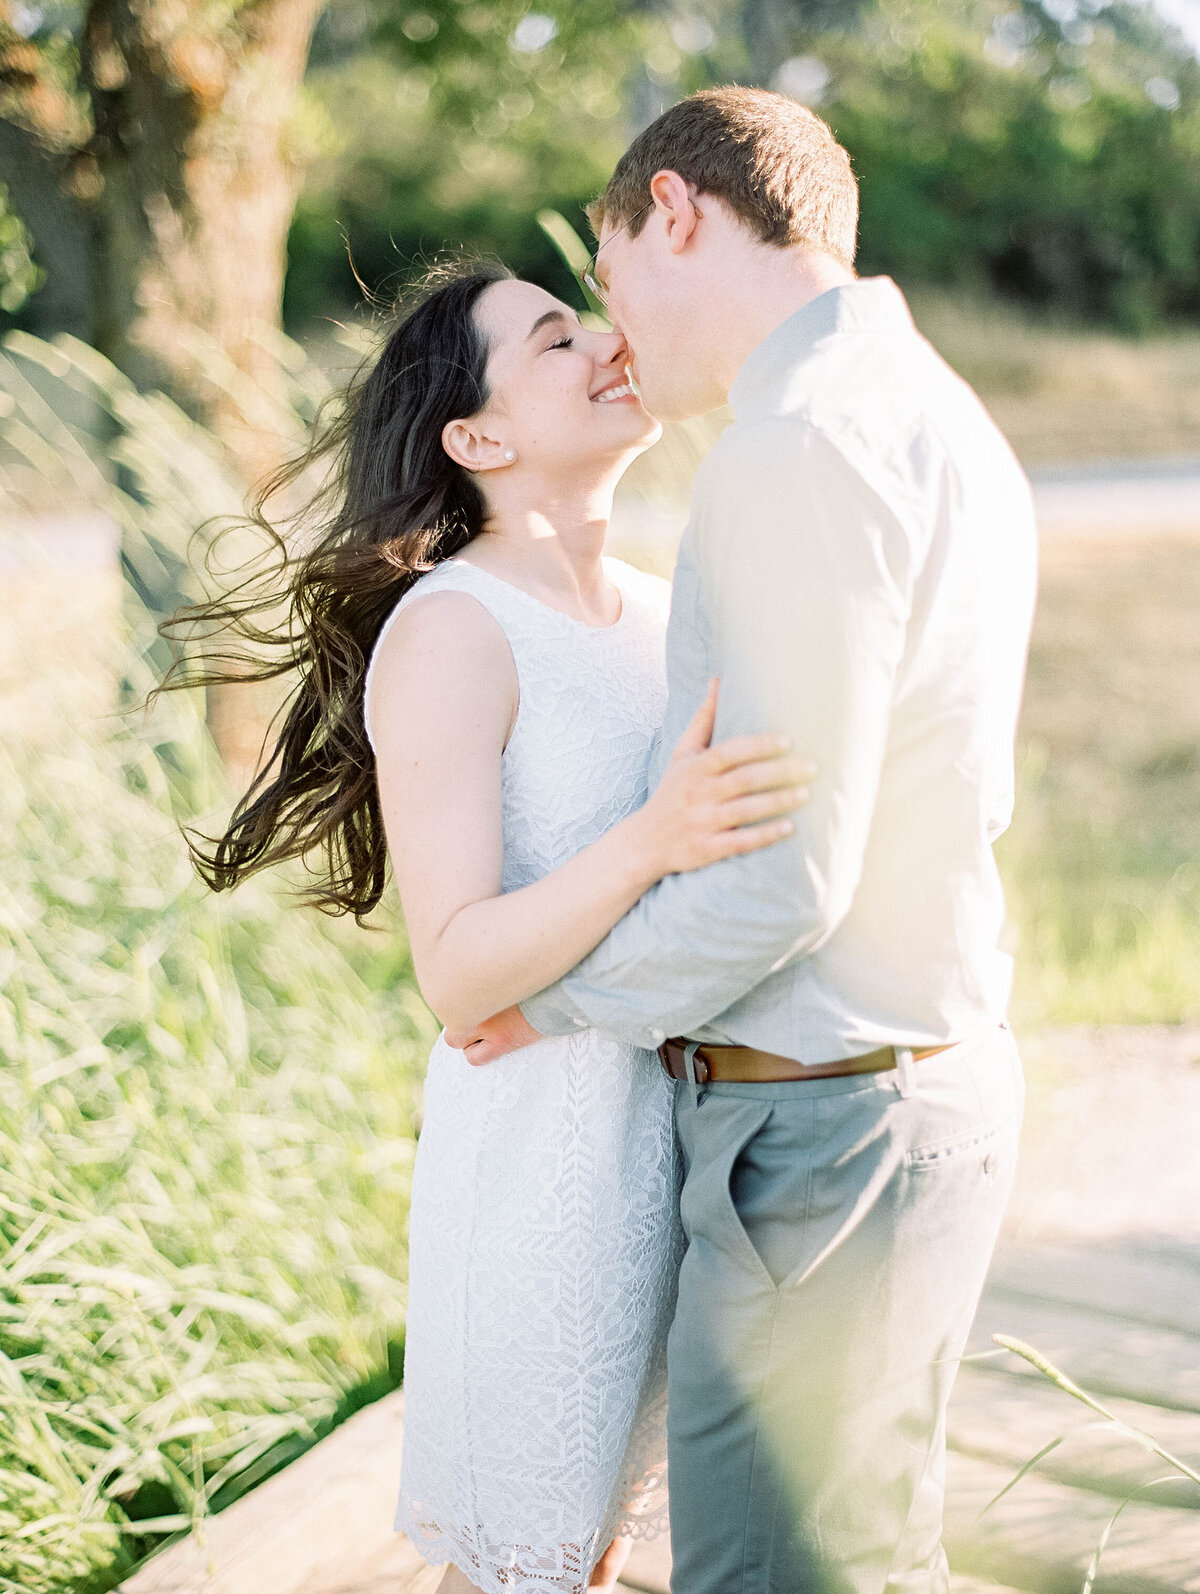 Filoli_Gardens_California_Engagement_Photo-17